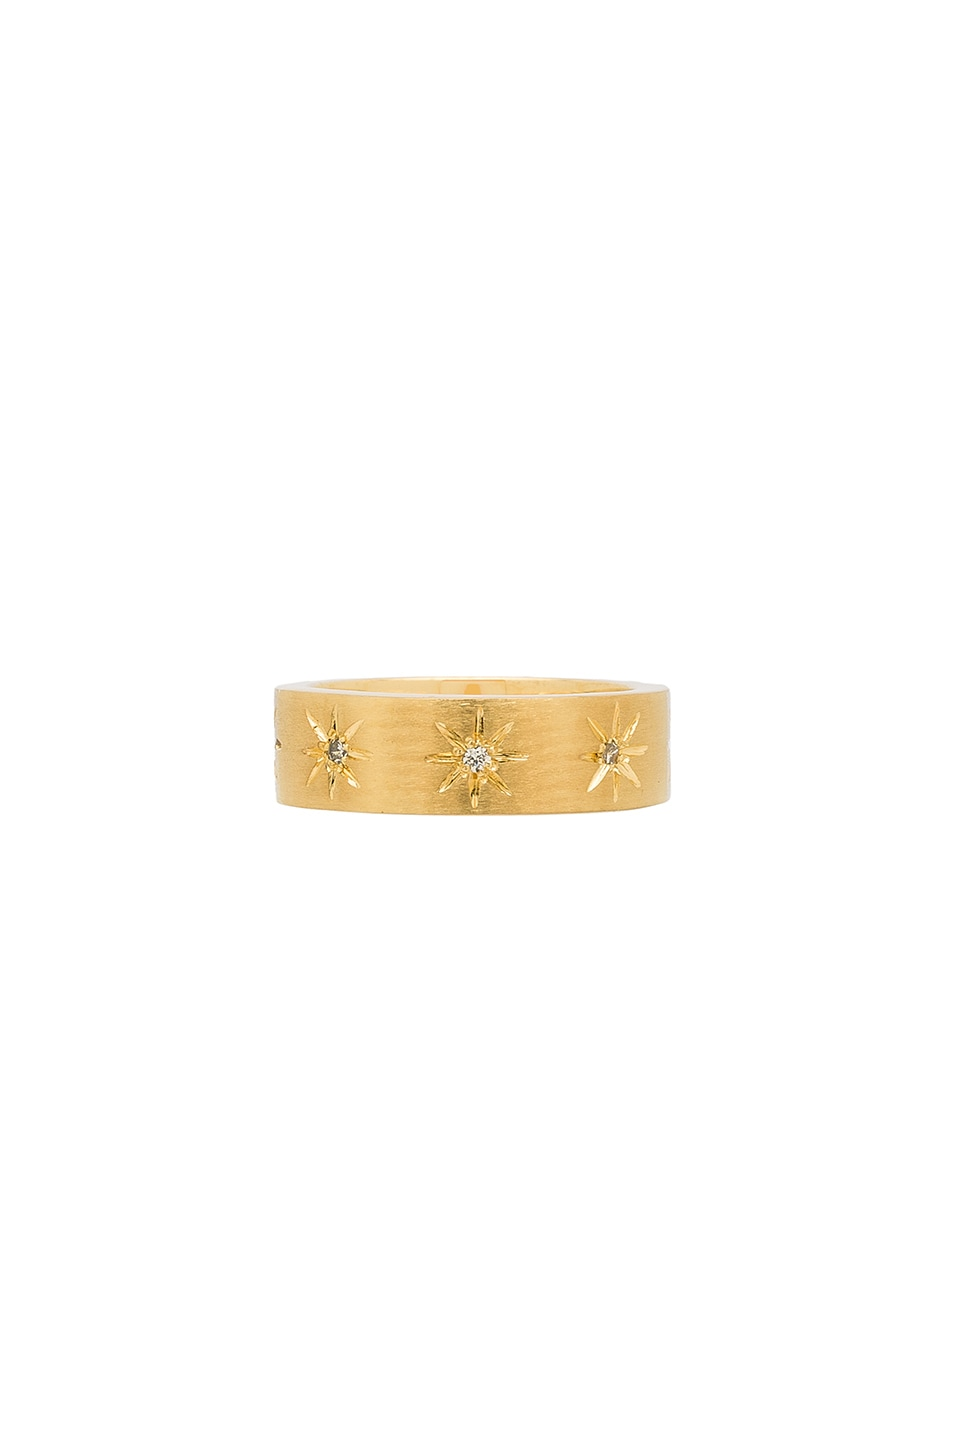 Jacquie Aiche CZ Burst Smooth Flat Ring in Gold